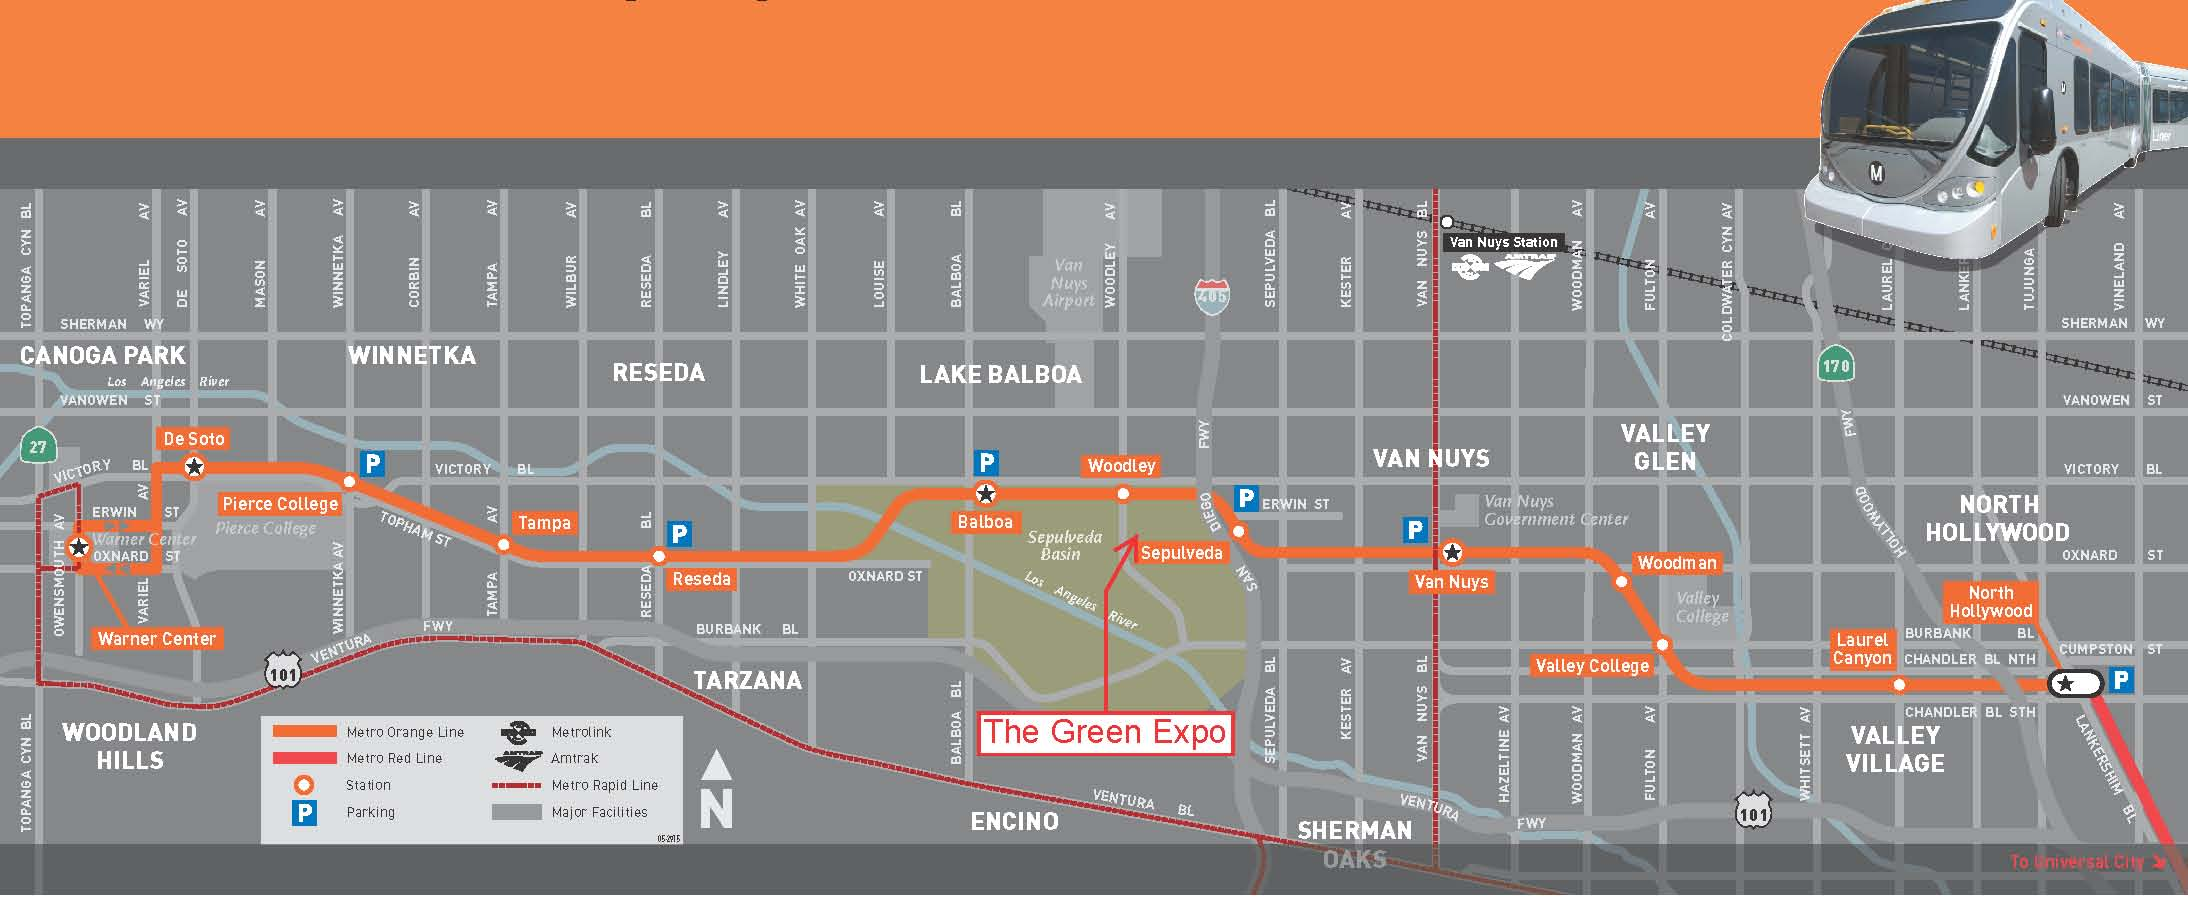 Metro Orange Line Map | Uptowncritters